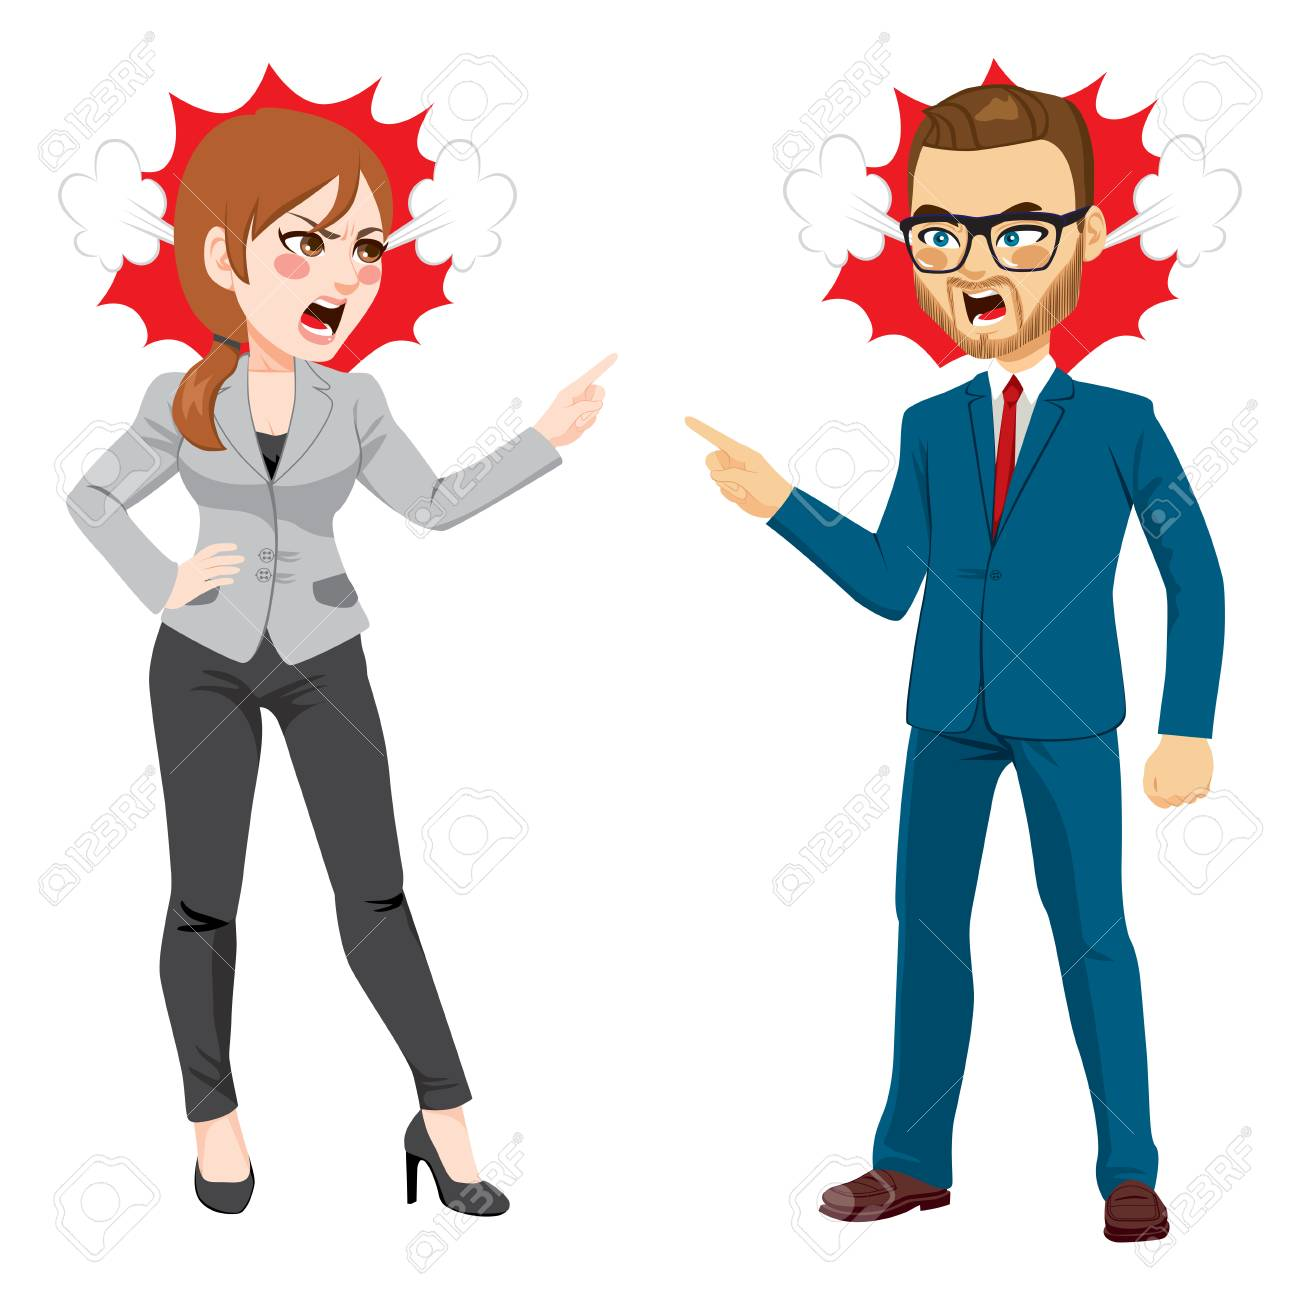 Workplace Conflict Stock Illustrations – 684 Workplace Conflict Stock  Illustrations, Vectors & Clipart - Dreamstime